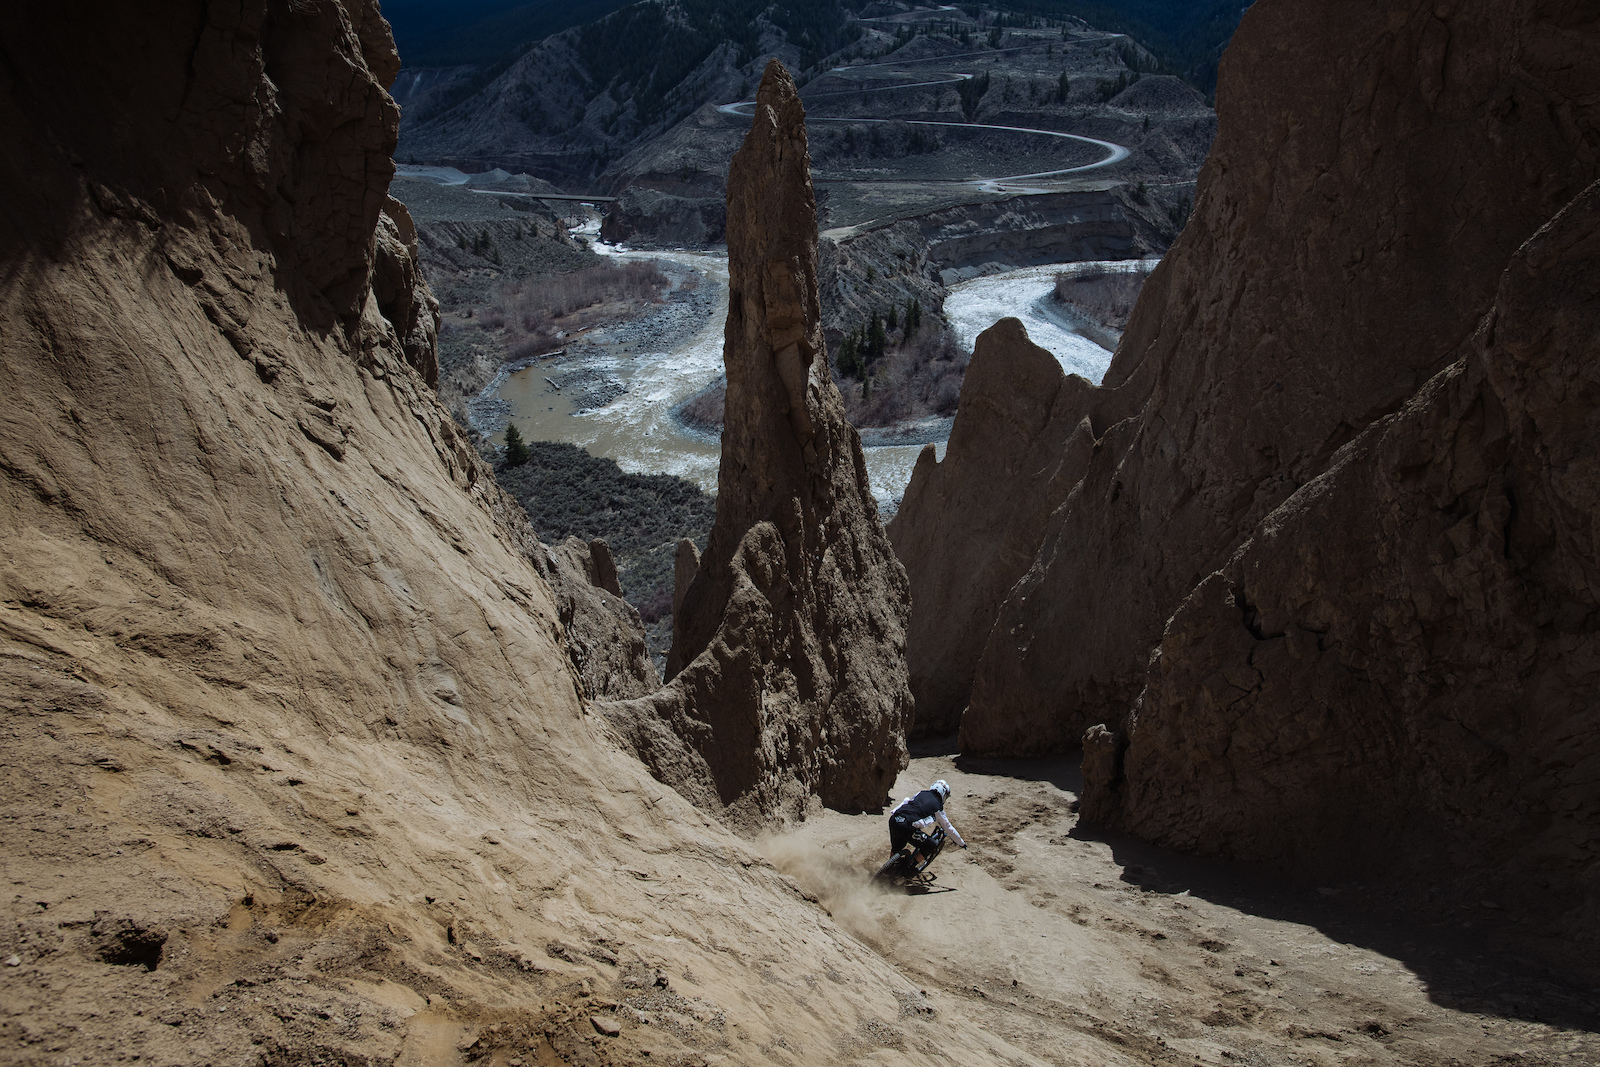 With the main line in the canyon shut down because a Hoodoo had fallen down the chute we decided to explore other options. Kenny exploring his options.